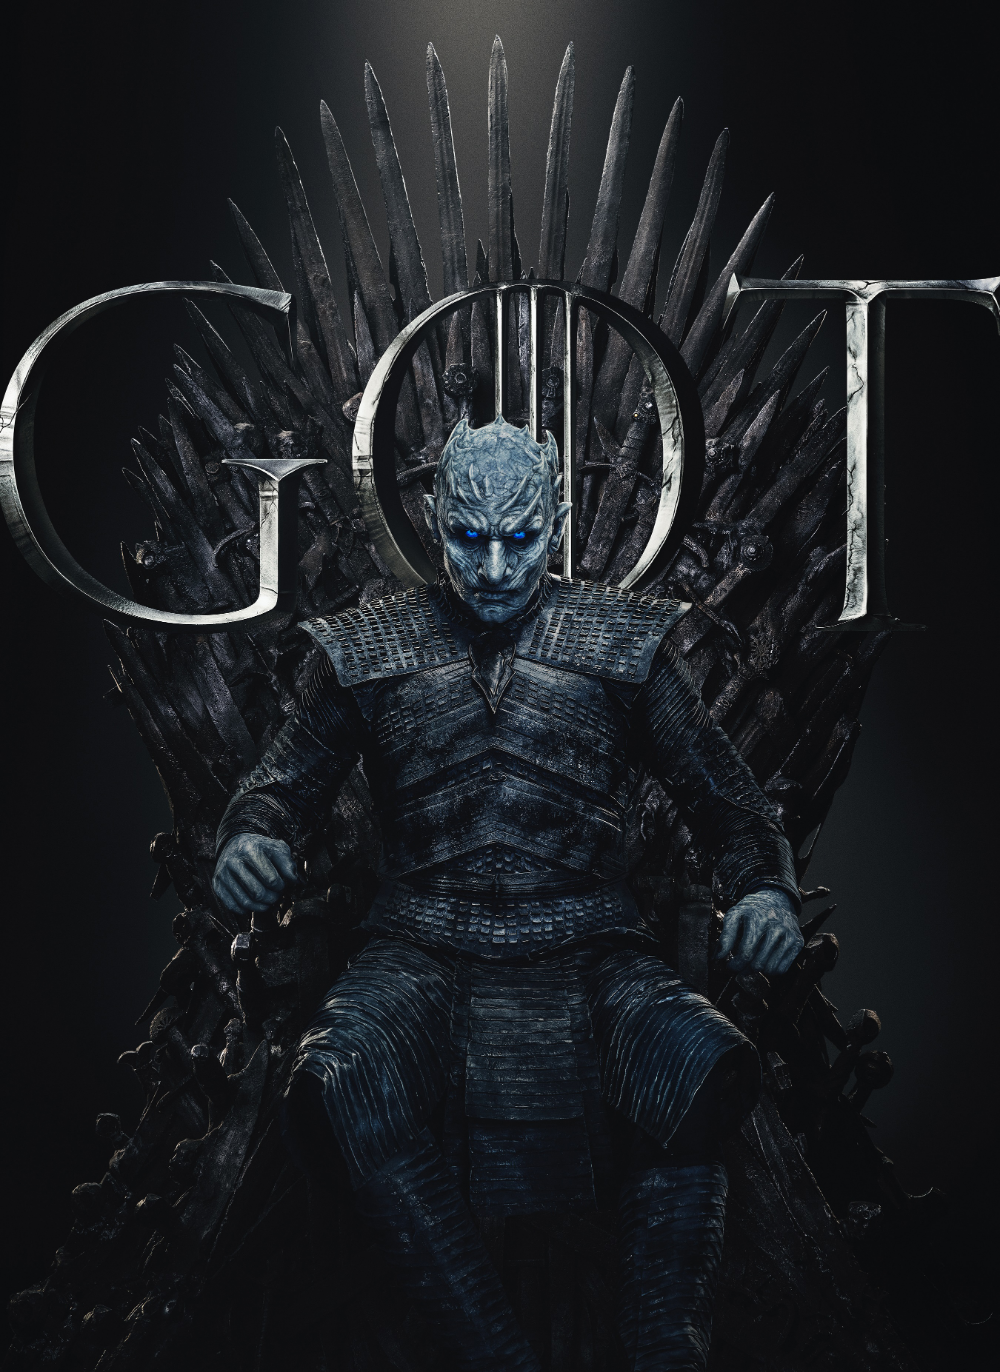 Game Of Thrones Season 8 Night King Poster Culture Posters 20 Off Night King Gaming Wallpapers Hd Fantasy Novels